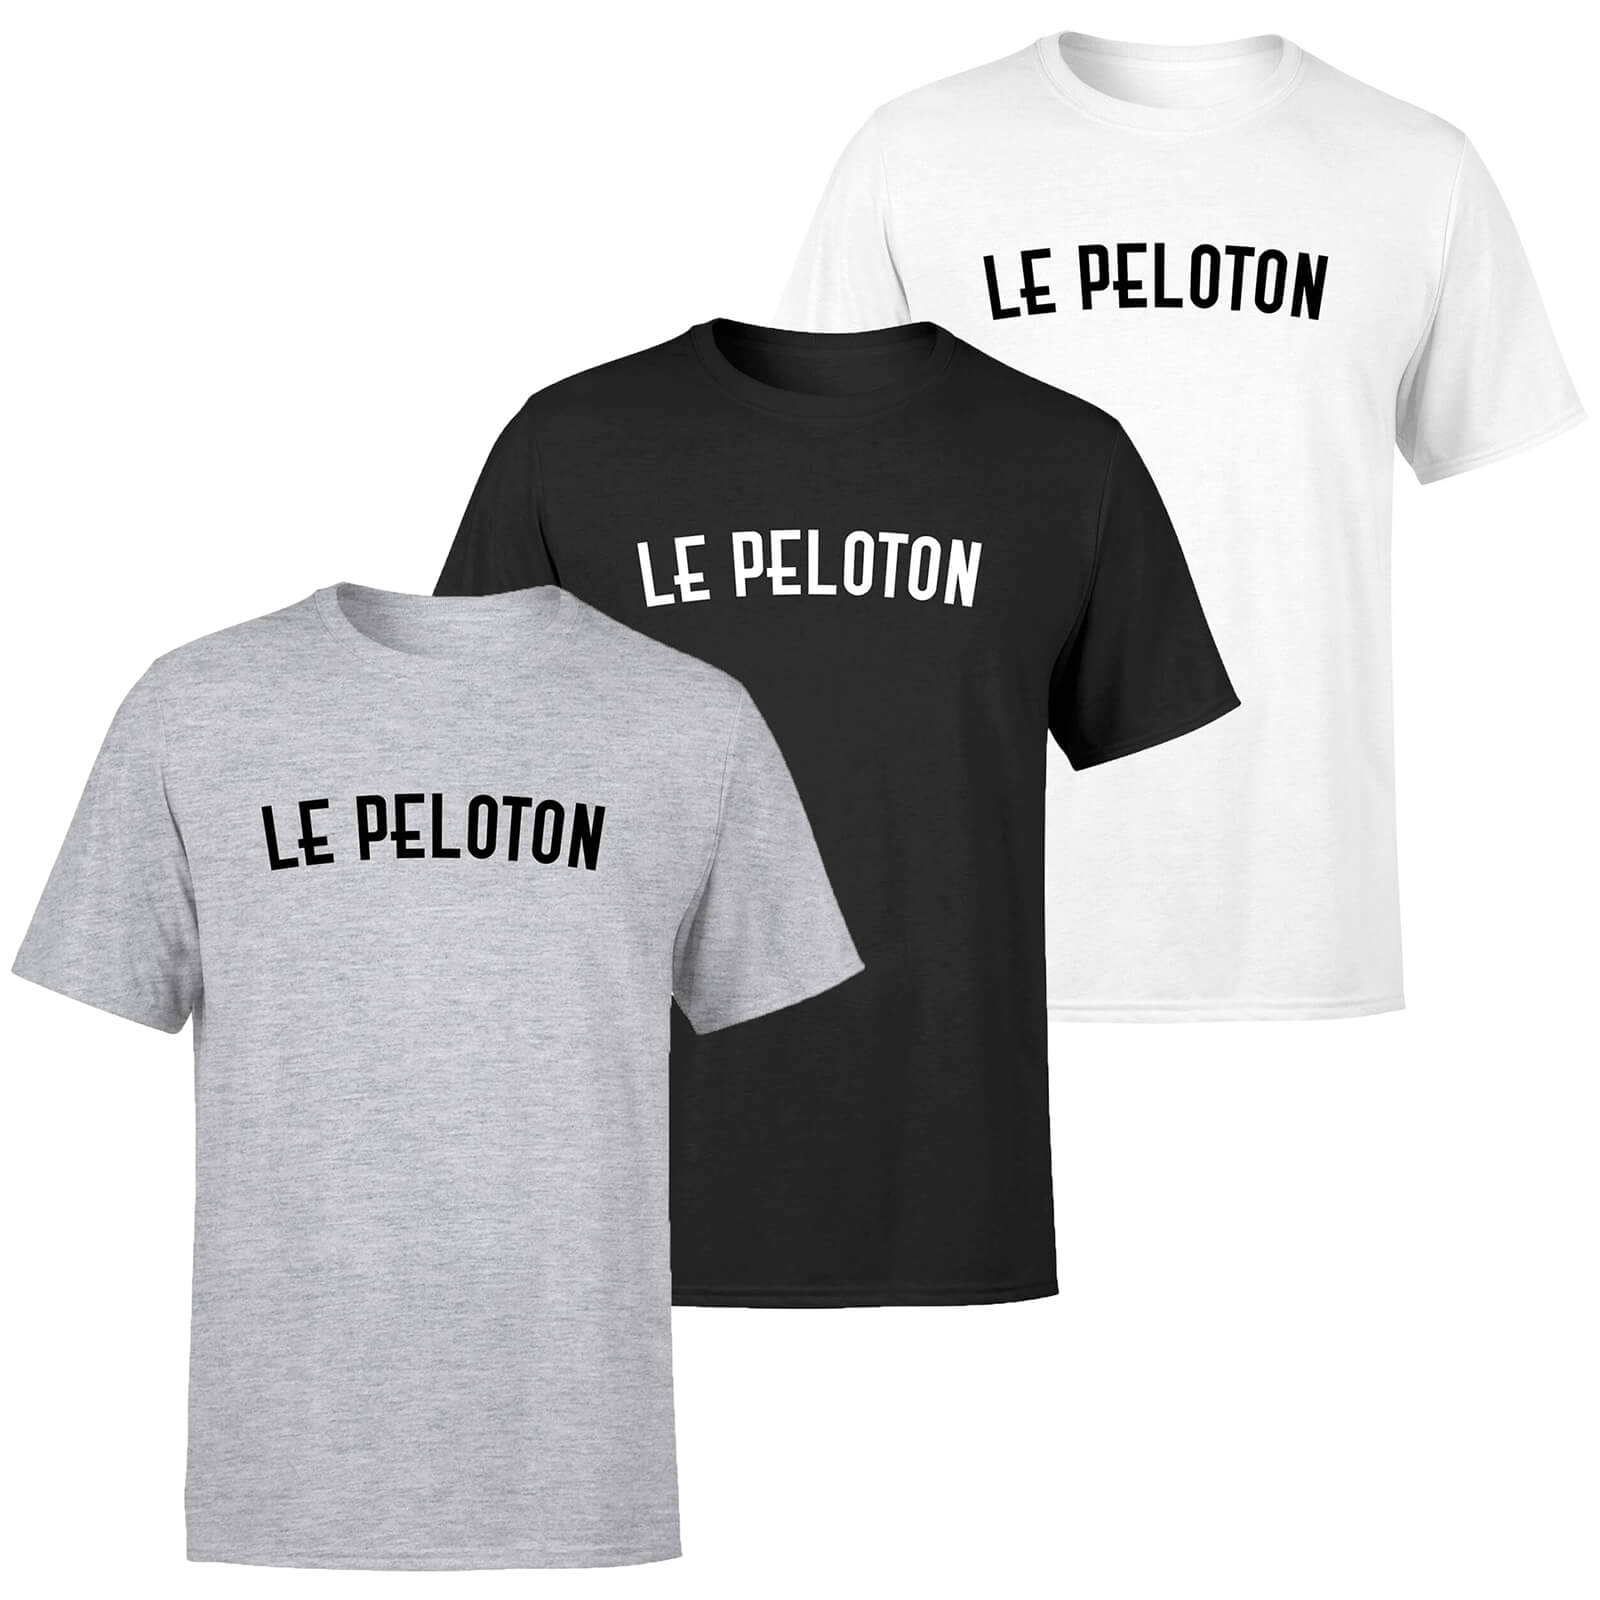 Le Peloton Men's T-Shirt - XXL - Grey